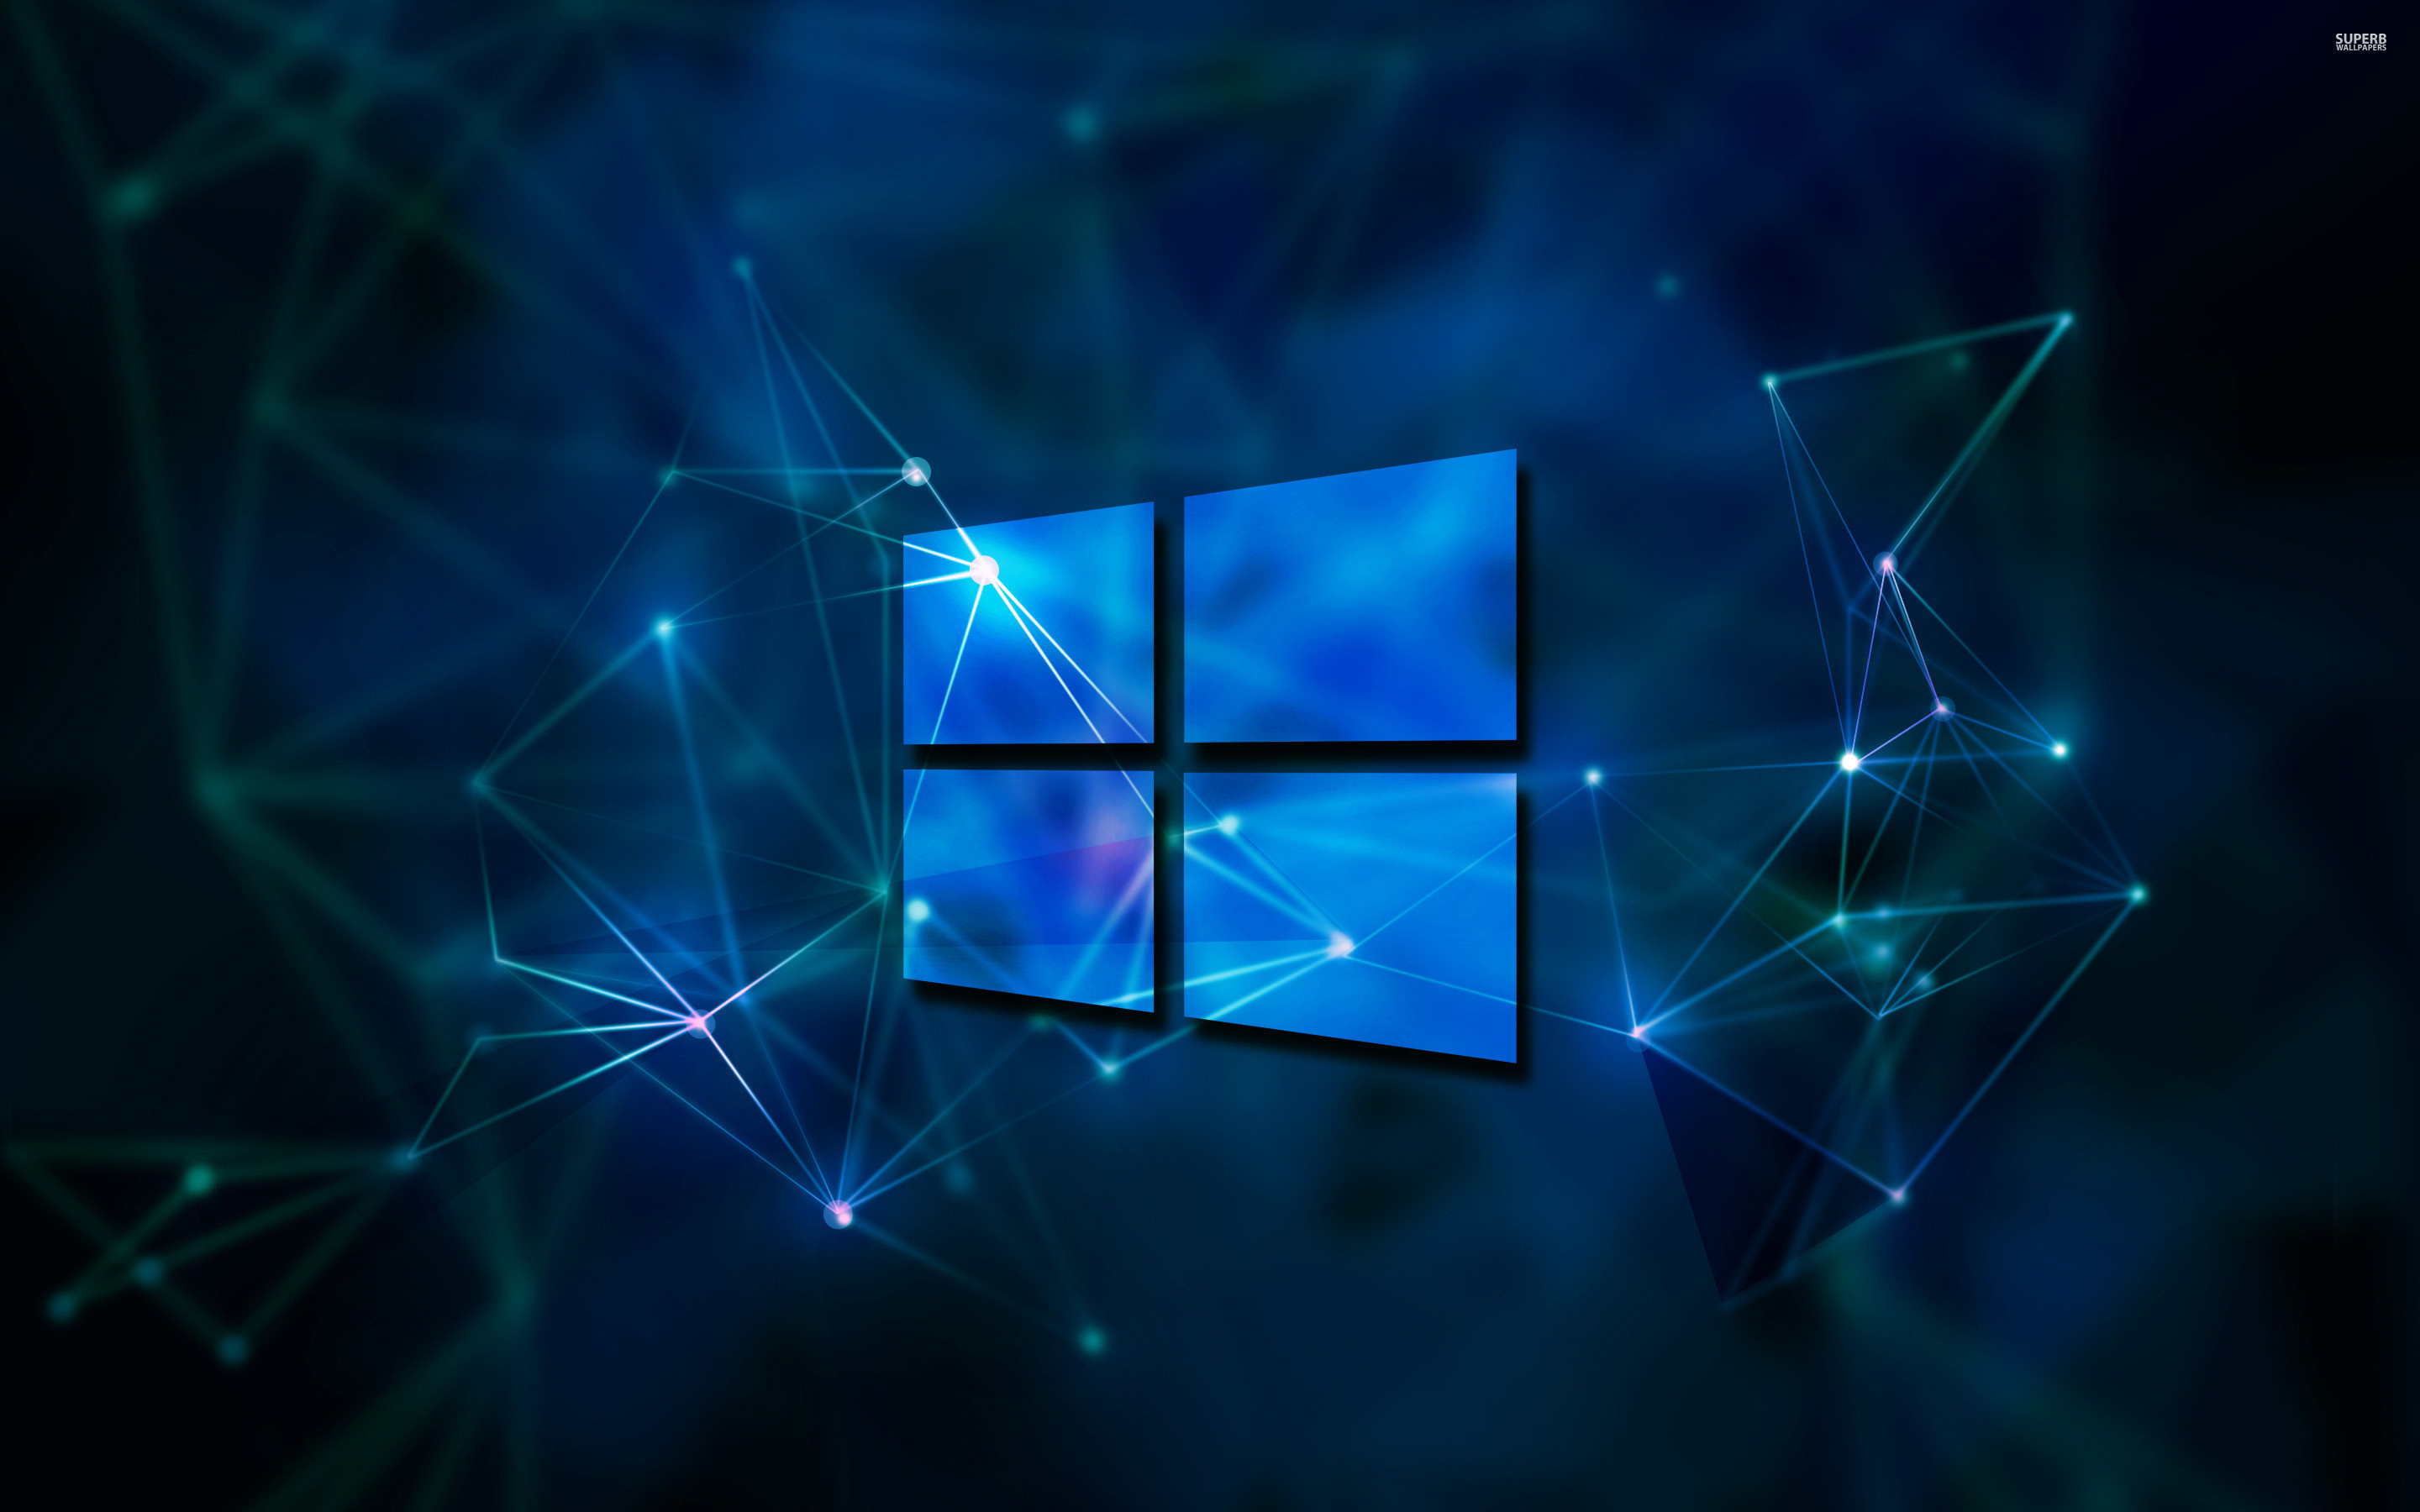 live wallpapers for windows 10 54 images